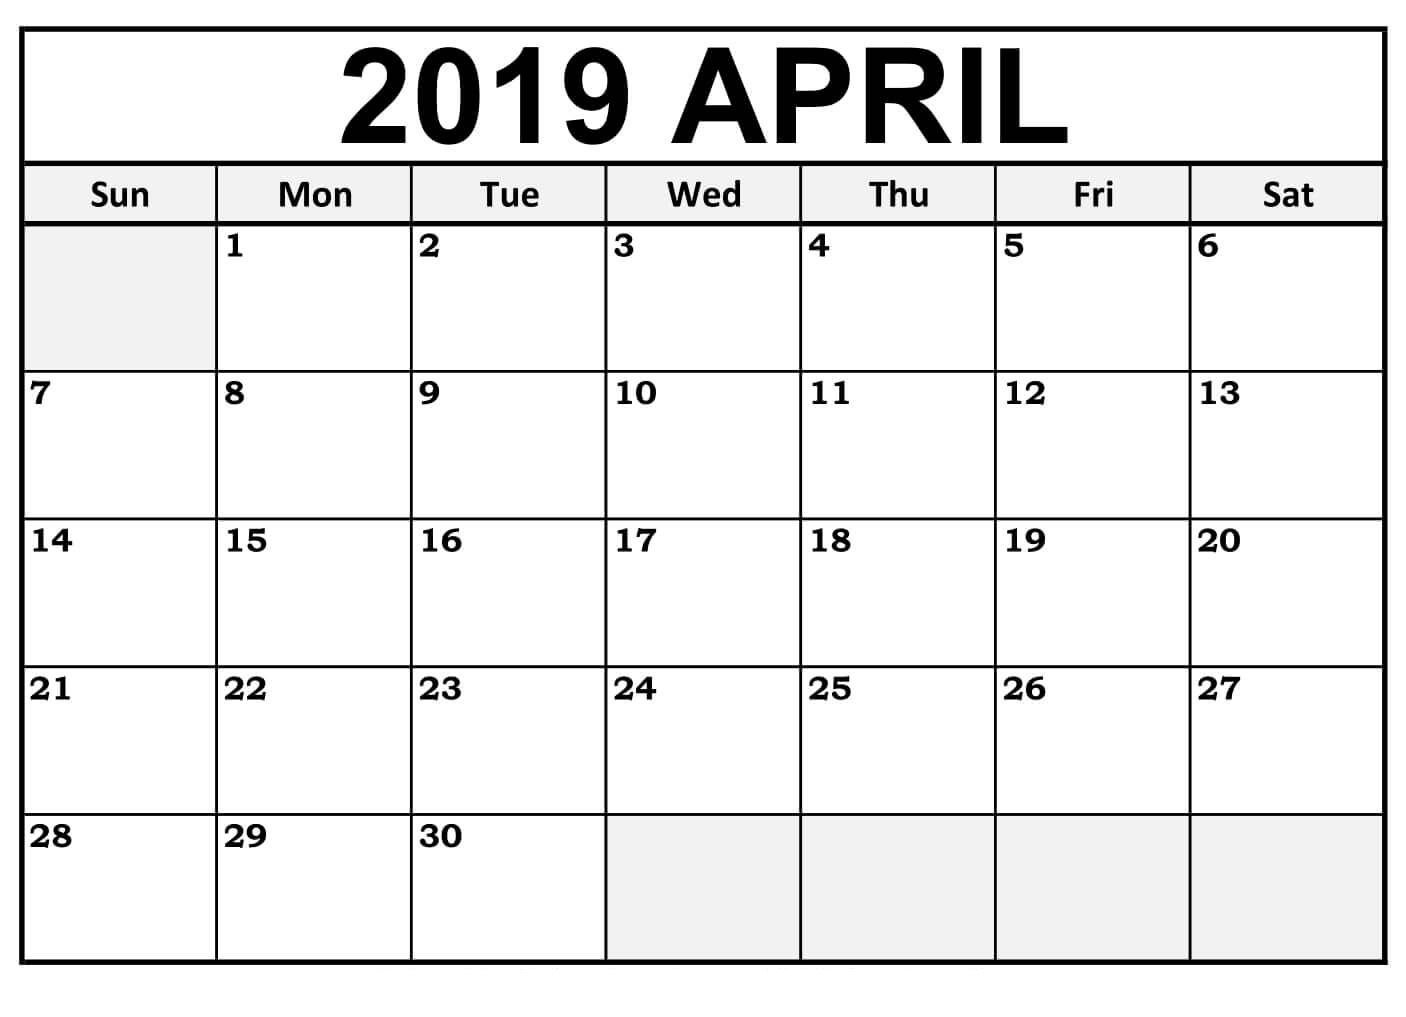 Free Printable April 2019 Calendar Downloadable #tumblr #twitter #fb - Free Printable Facebook Template